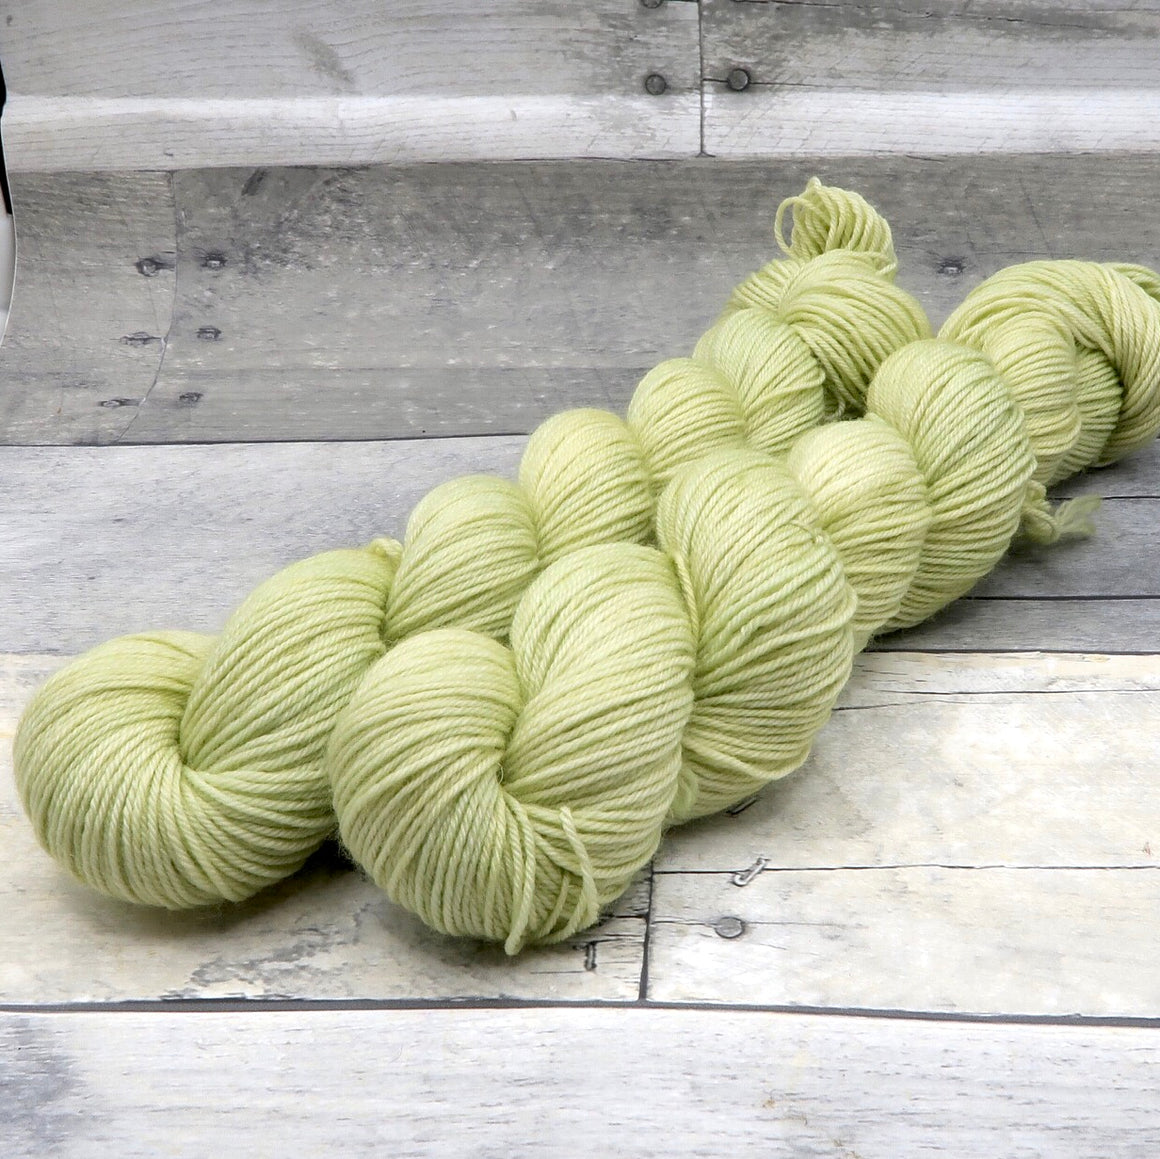 Pistachio - 50g - Tonal Yarn (Everyday Sock)